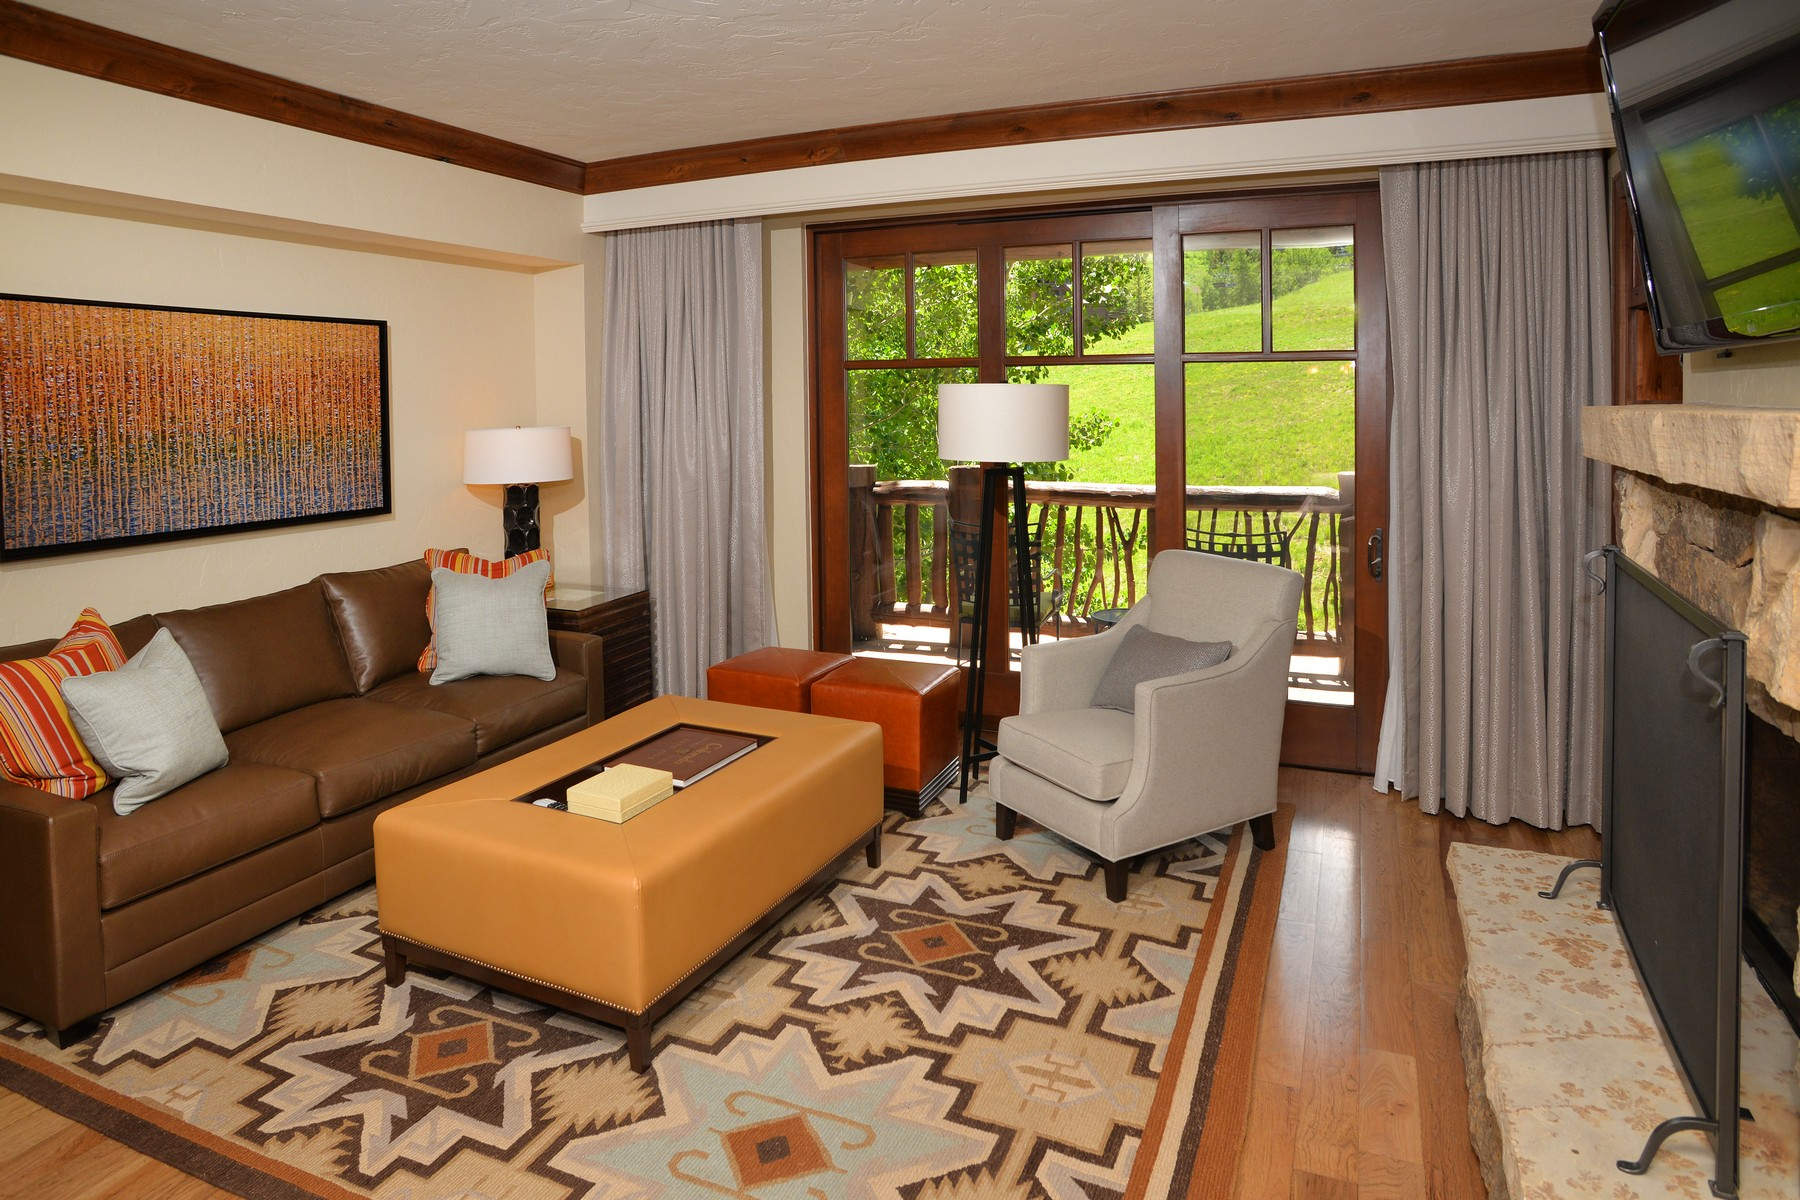 Fractional Ownership for Active at Timbers Bachelor Gulch 100 Bachelor Ridge Road #3605-07 Beaver Creek, Colorado 81620 United States